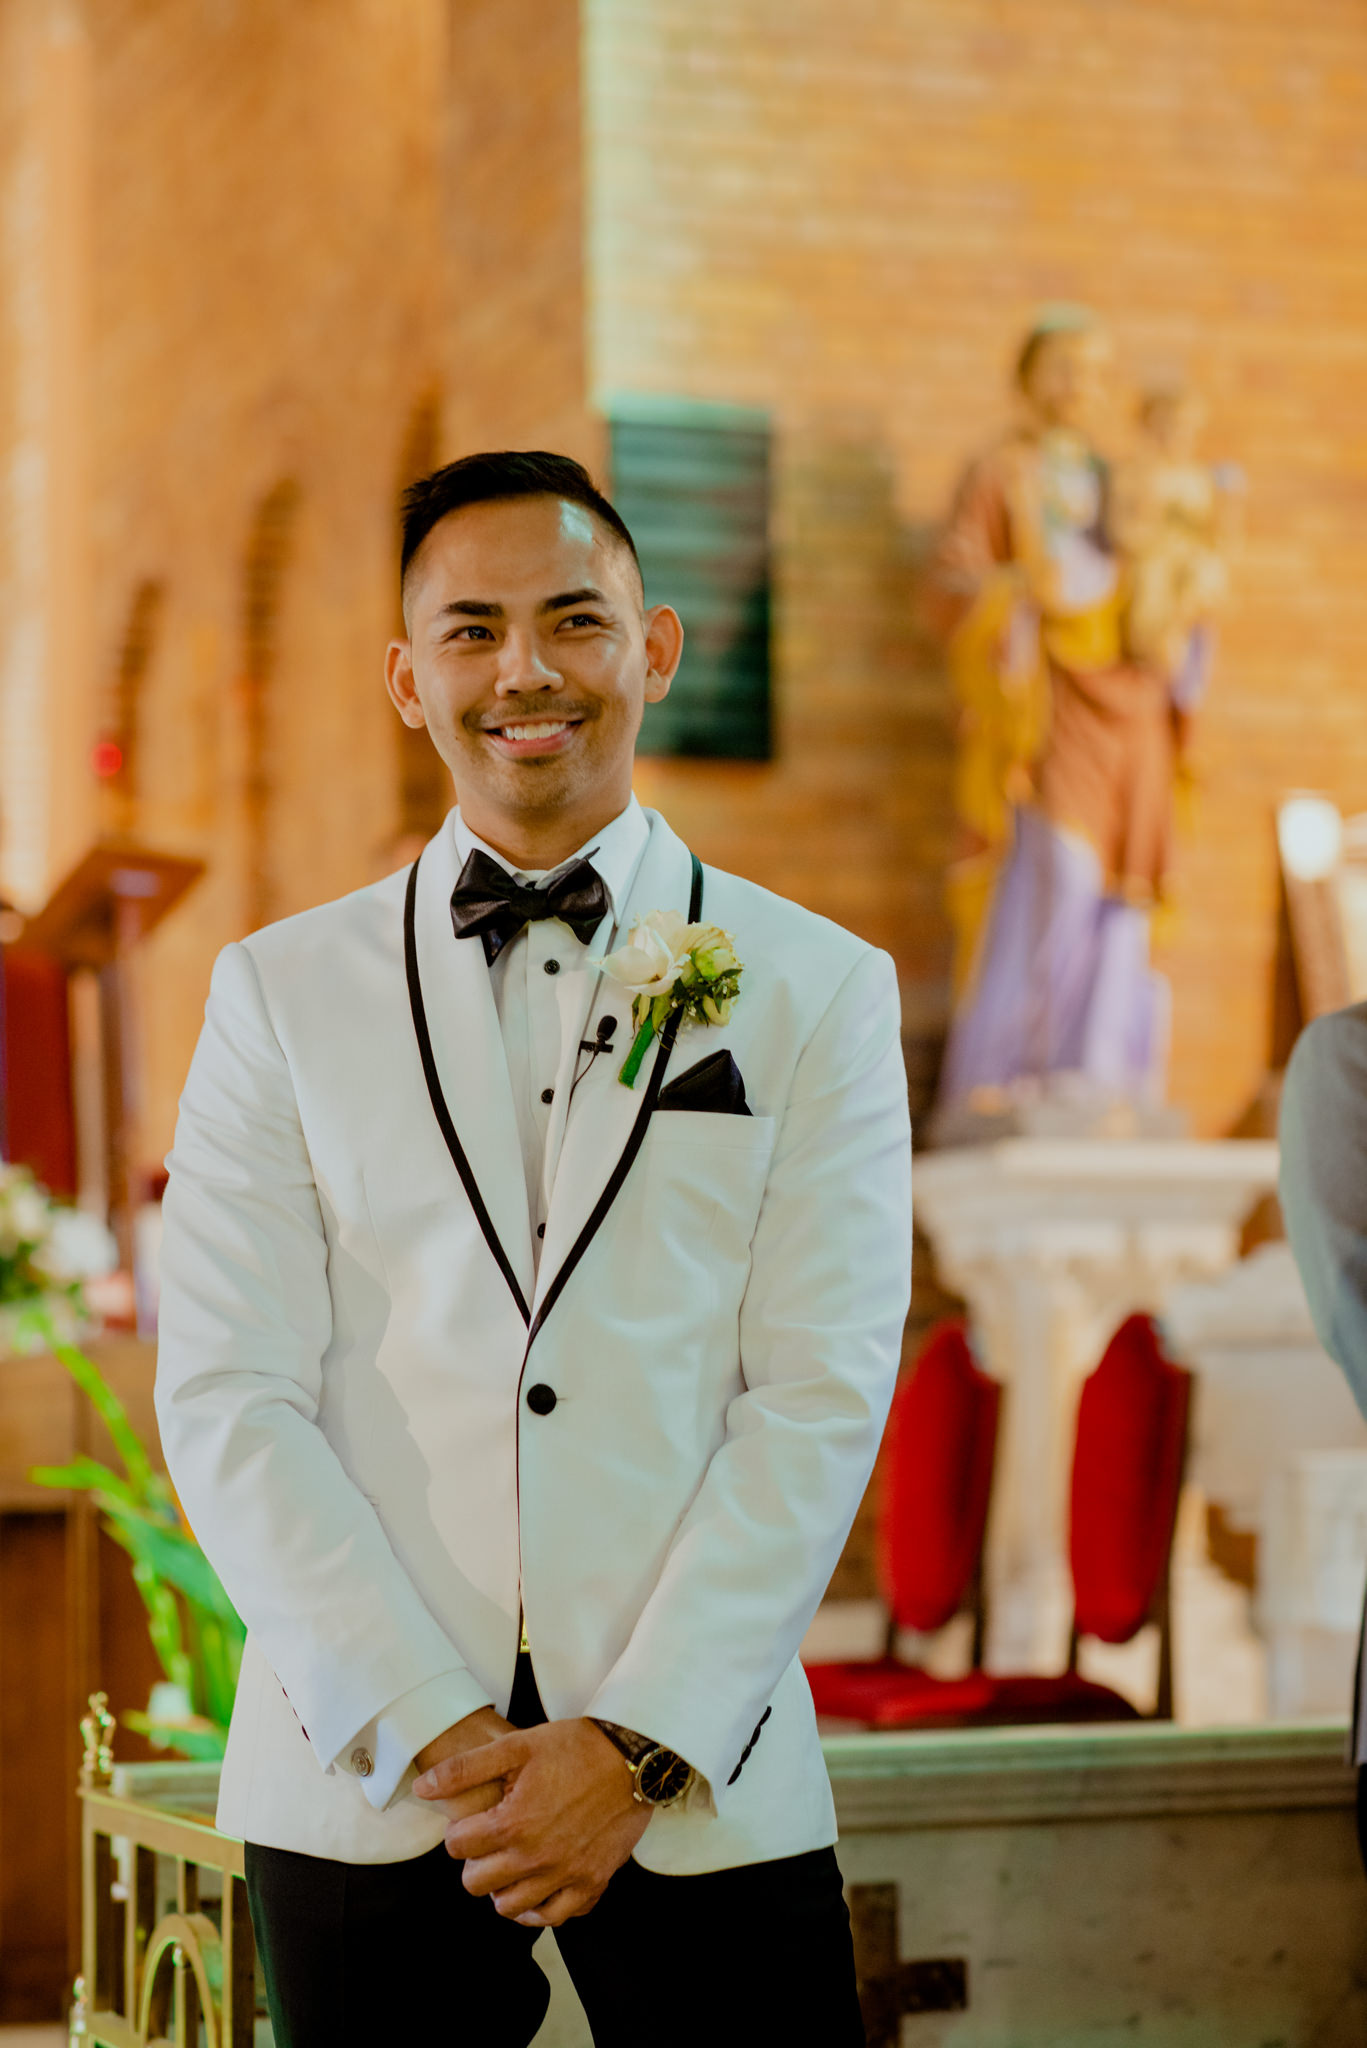 Groom nervously smiles as he stands and waits for his bride to arrive